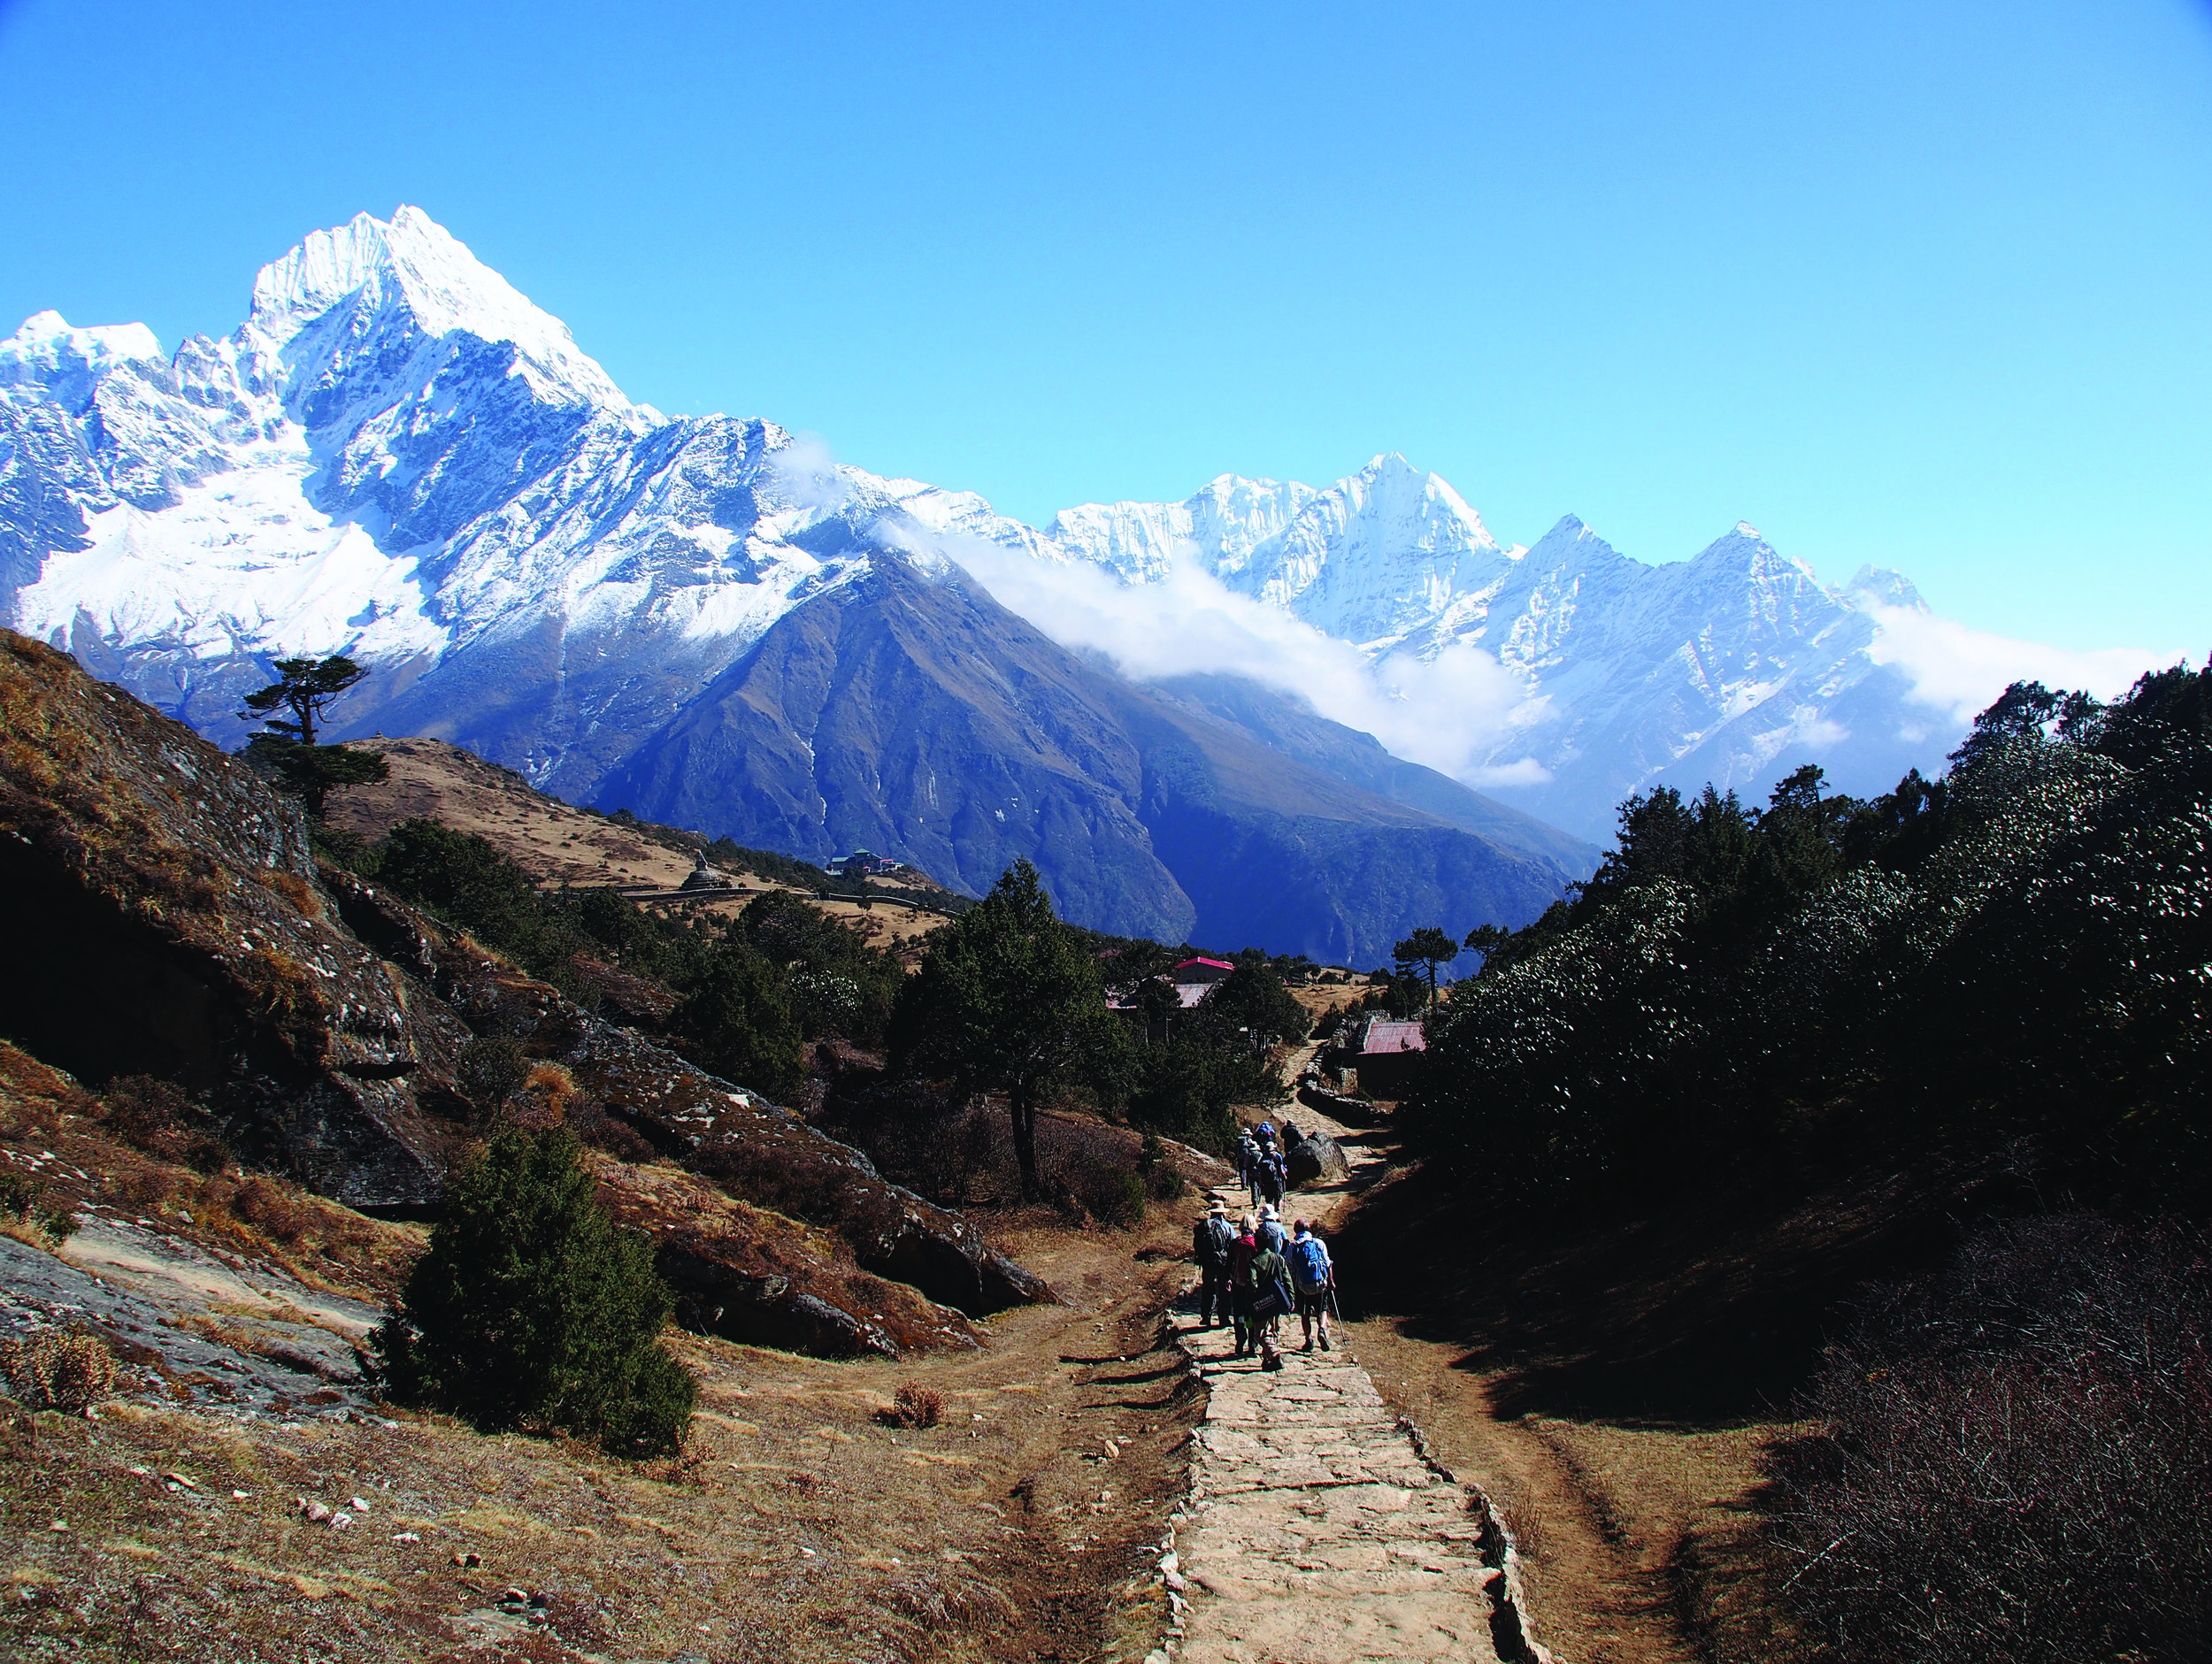 Above Namche Bazaar Everest Region